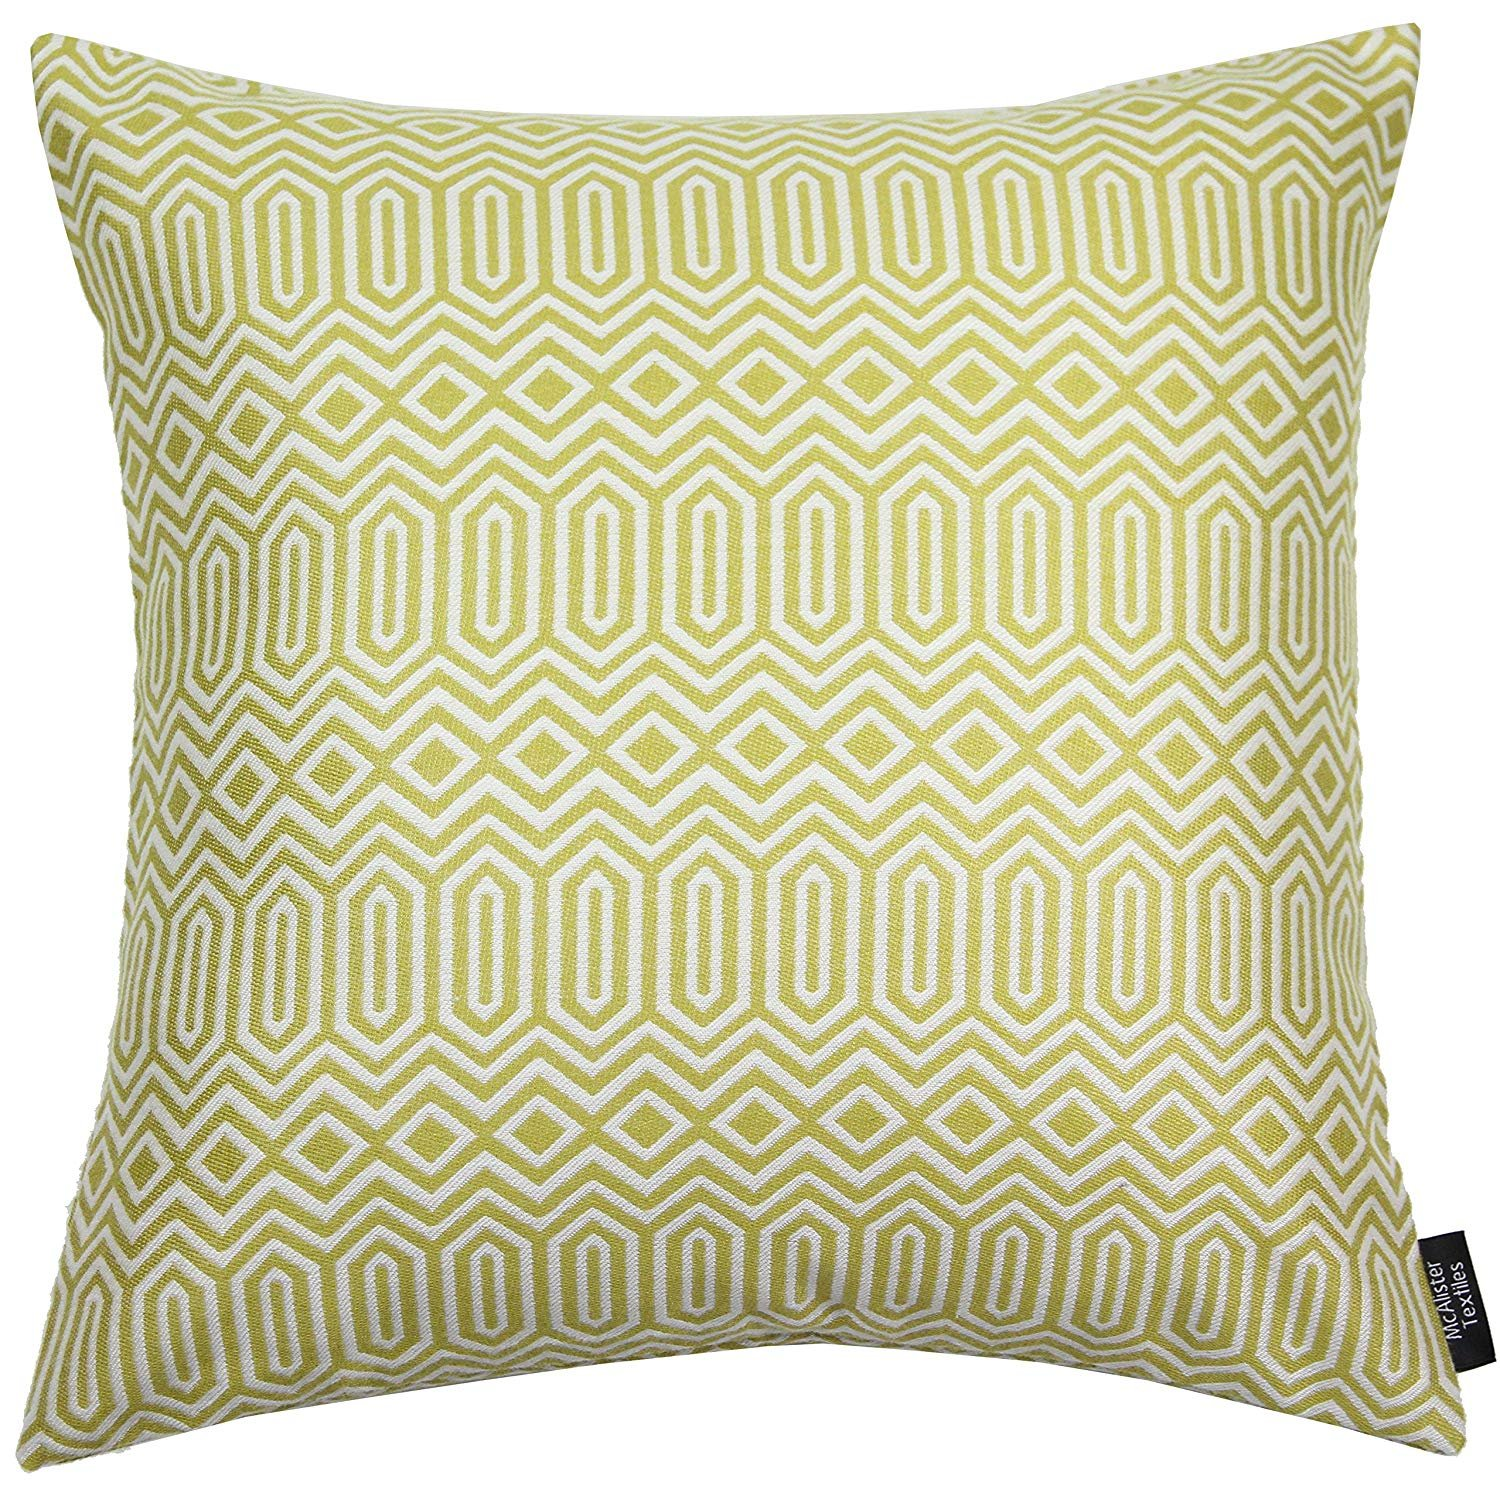 McAlister Colorado Woven Geometric 12x18 Oblong Pillow Cover | Charcoal Grey White Zip Decor Cushion Case | Thick Tribal Geo Geometry Modern Aztec Moroccan Accent McAlister Textiles